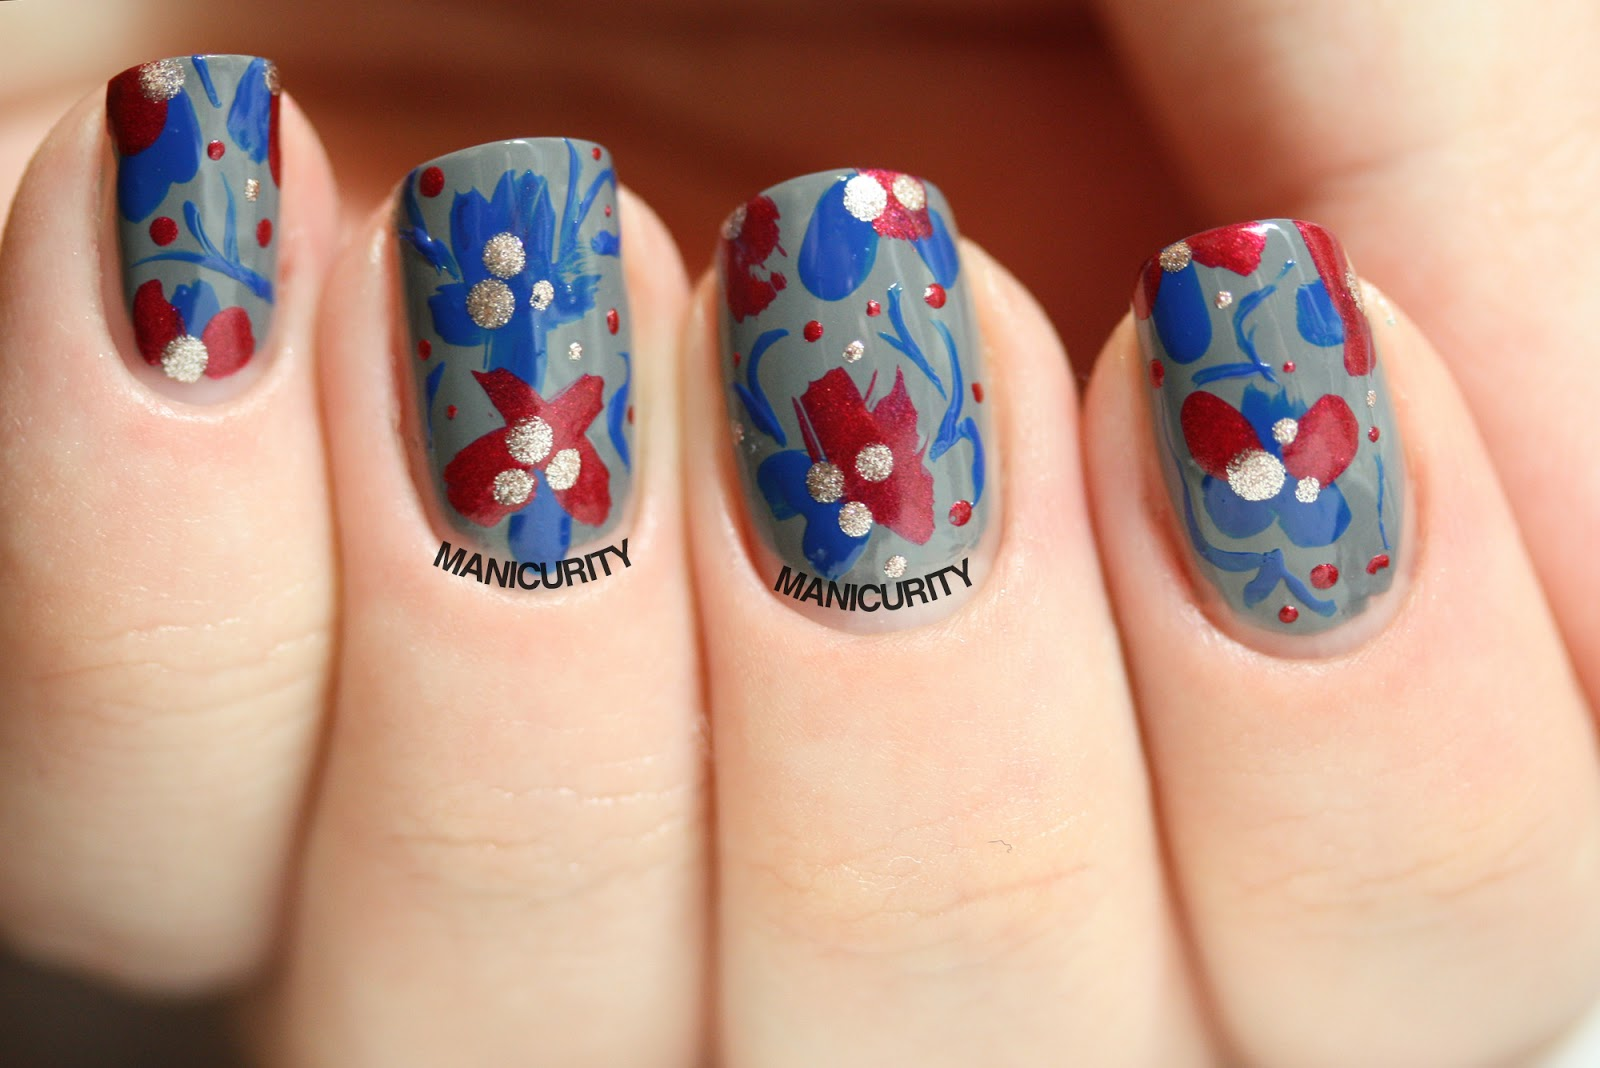 tri polish challenge abstract floral tapestry manicurity abstract nail art challenge 1600x1068